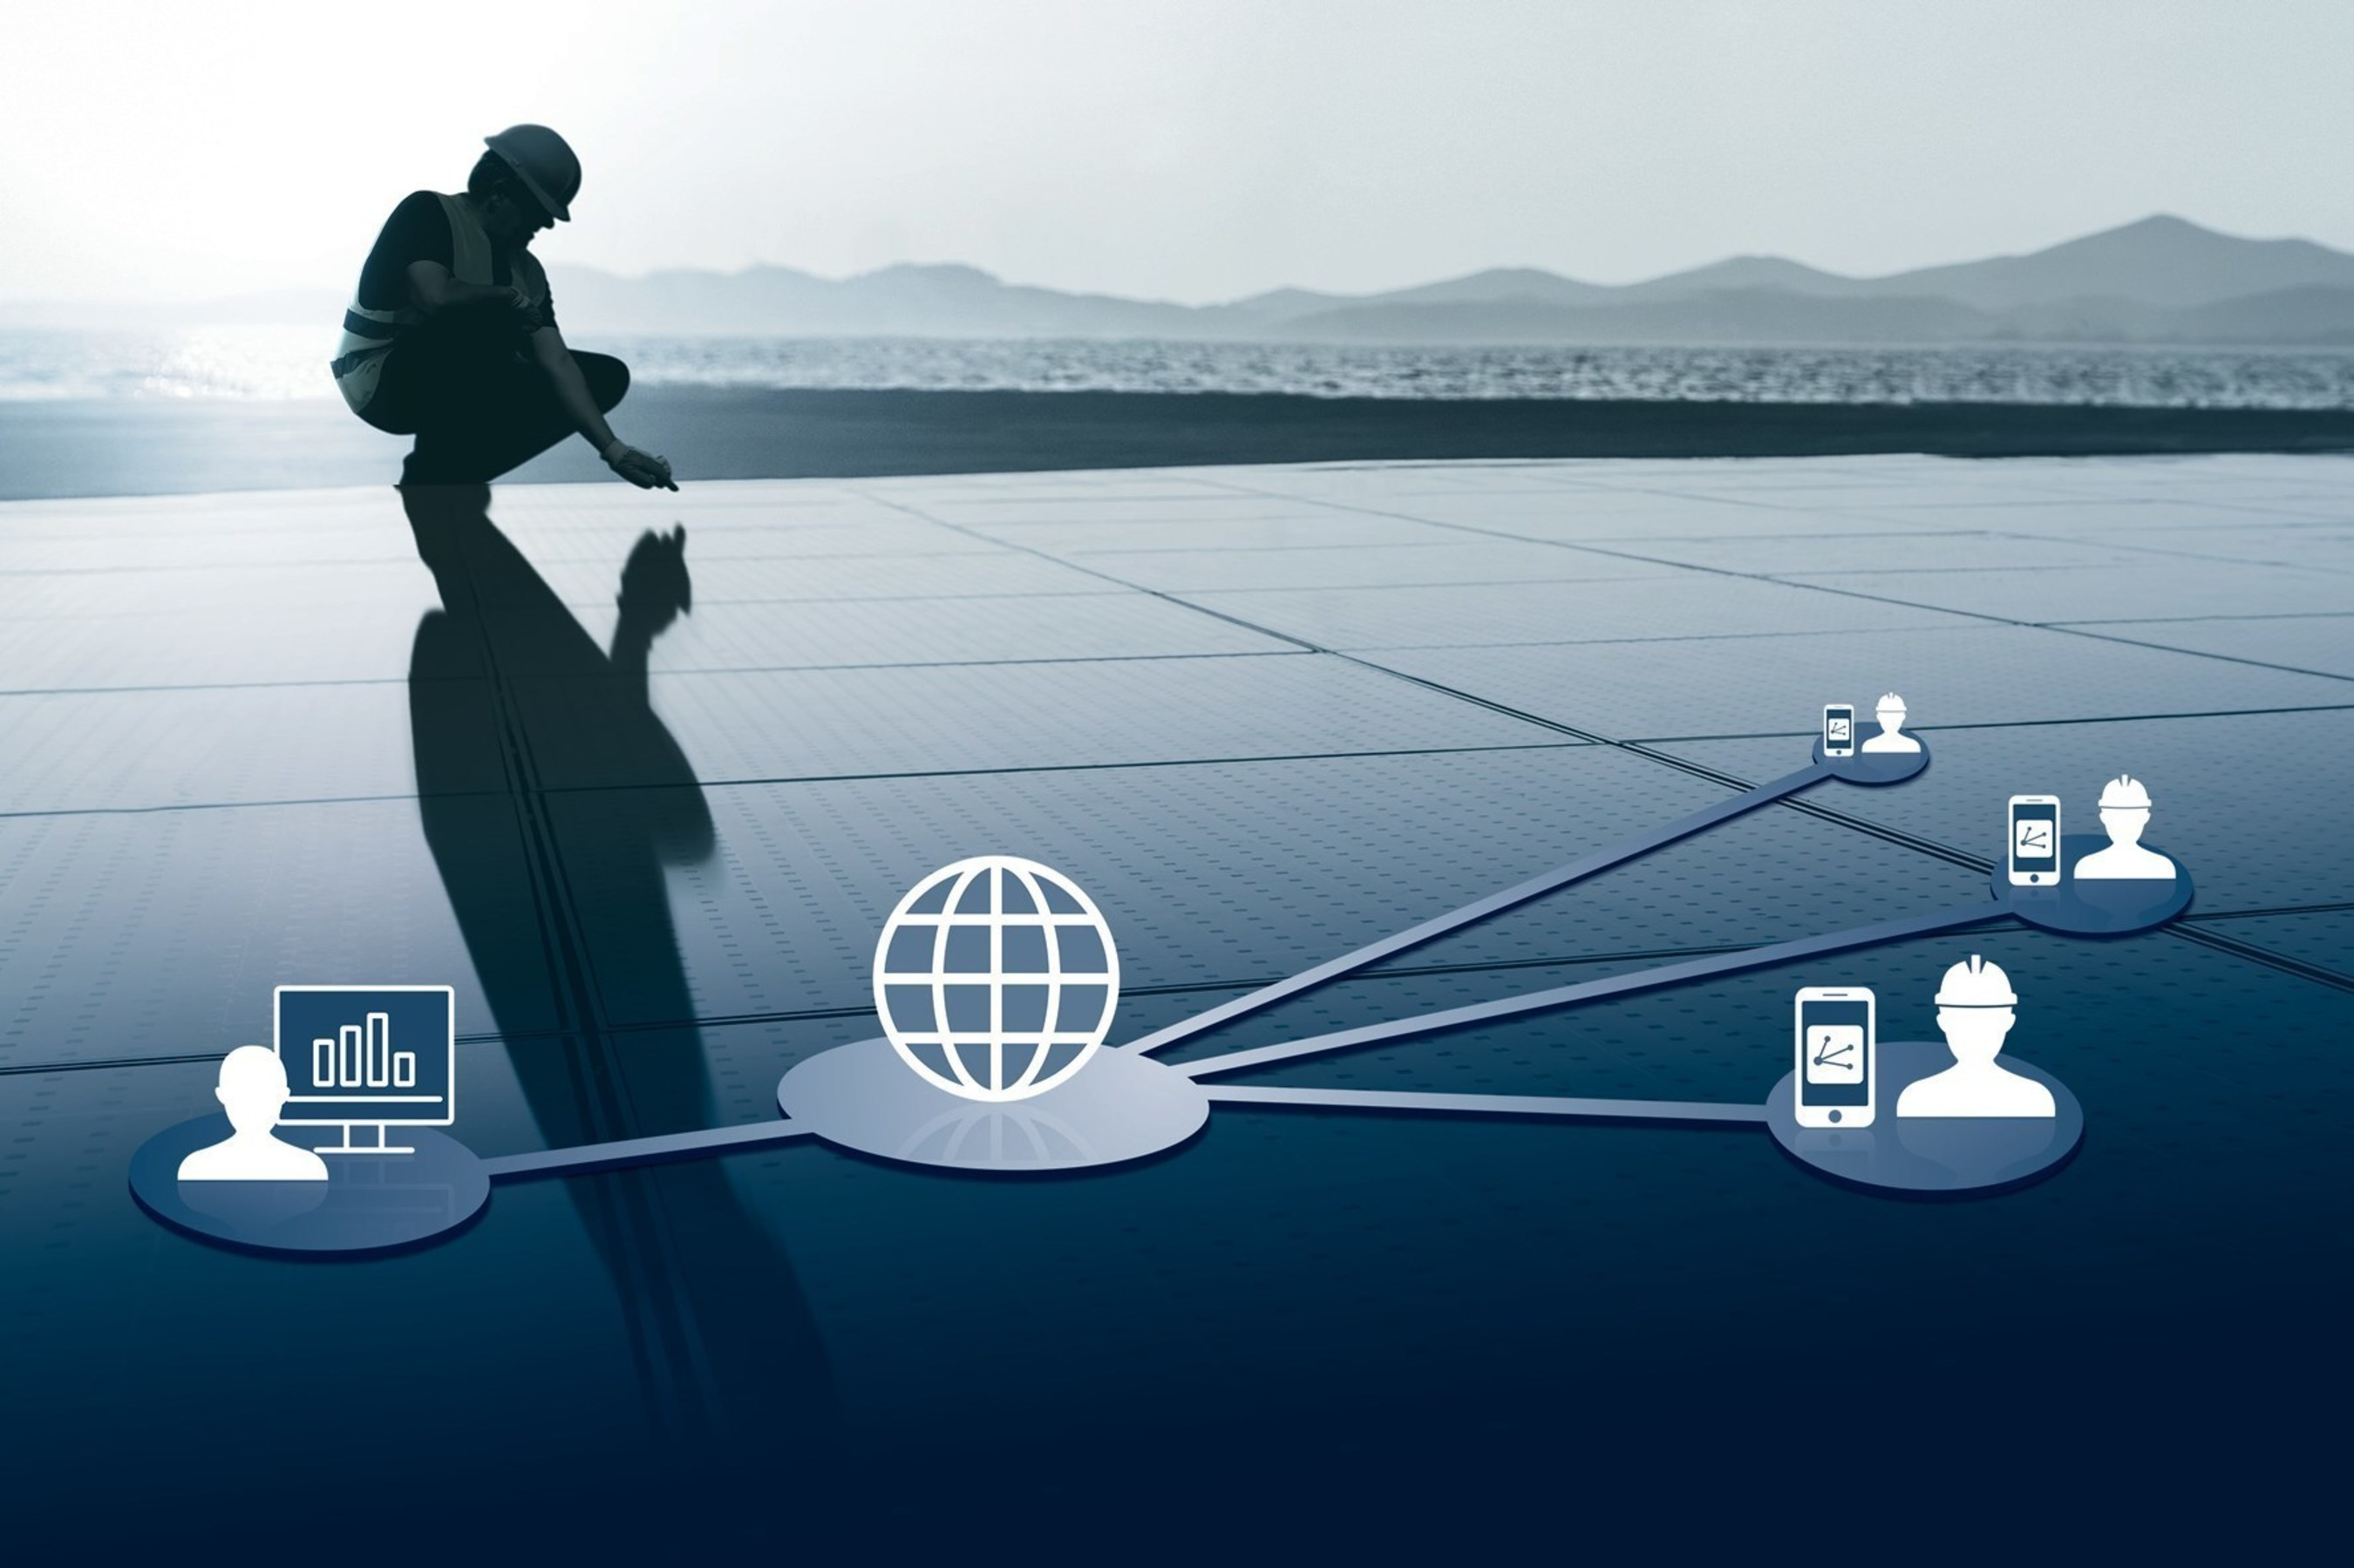 Raising Power services the global customers with local certified technicians